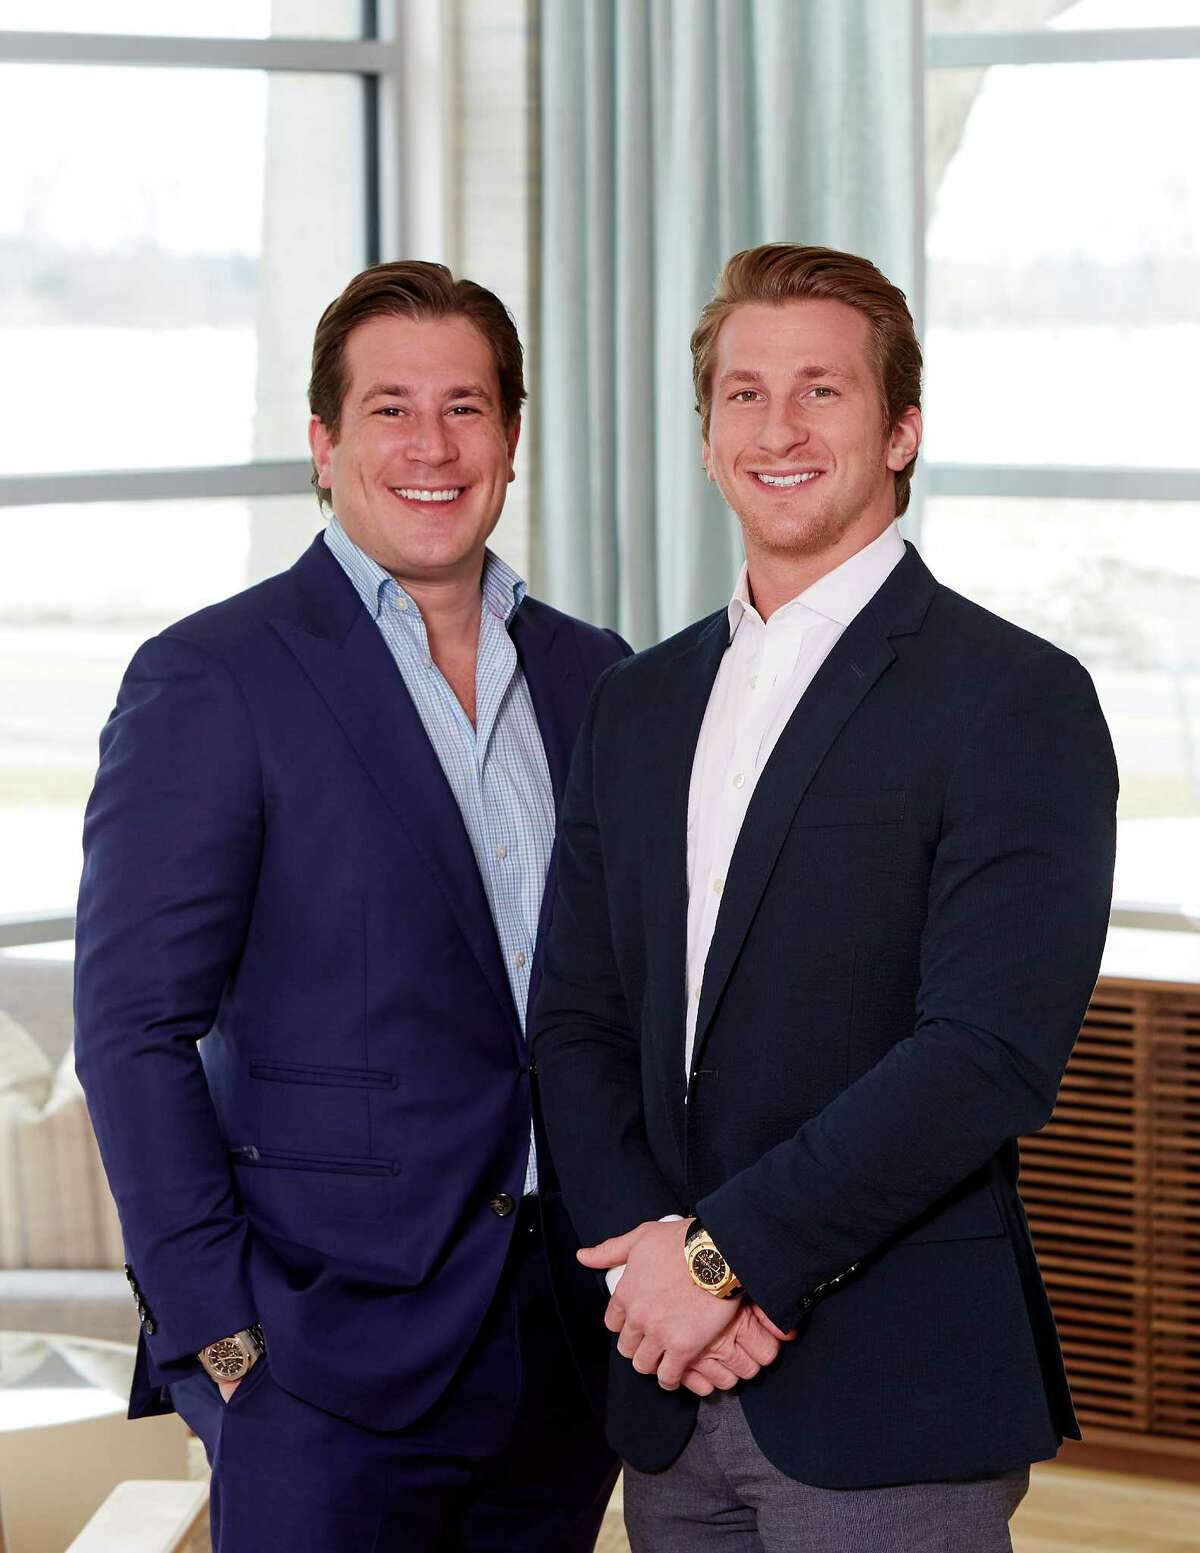 Zachary Vichinsky (right) and his brother Cody Vichinsky, co-founders of Bespoke Real Estate, are entering the Connecticut market with their first listing in Greenwich.